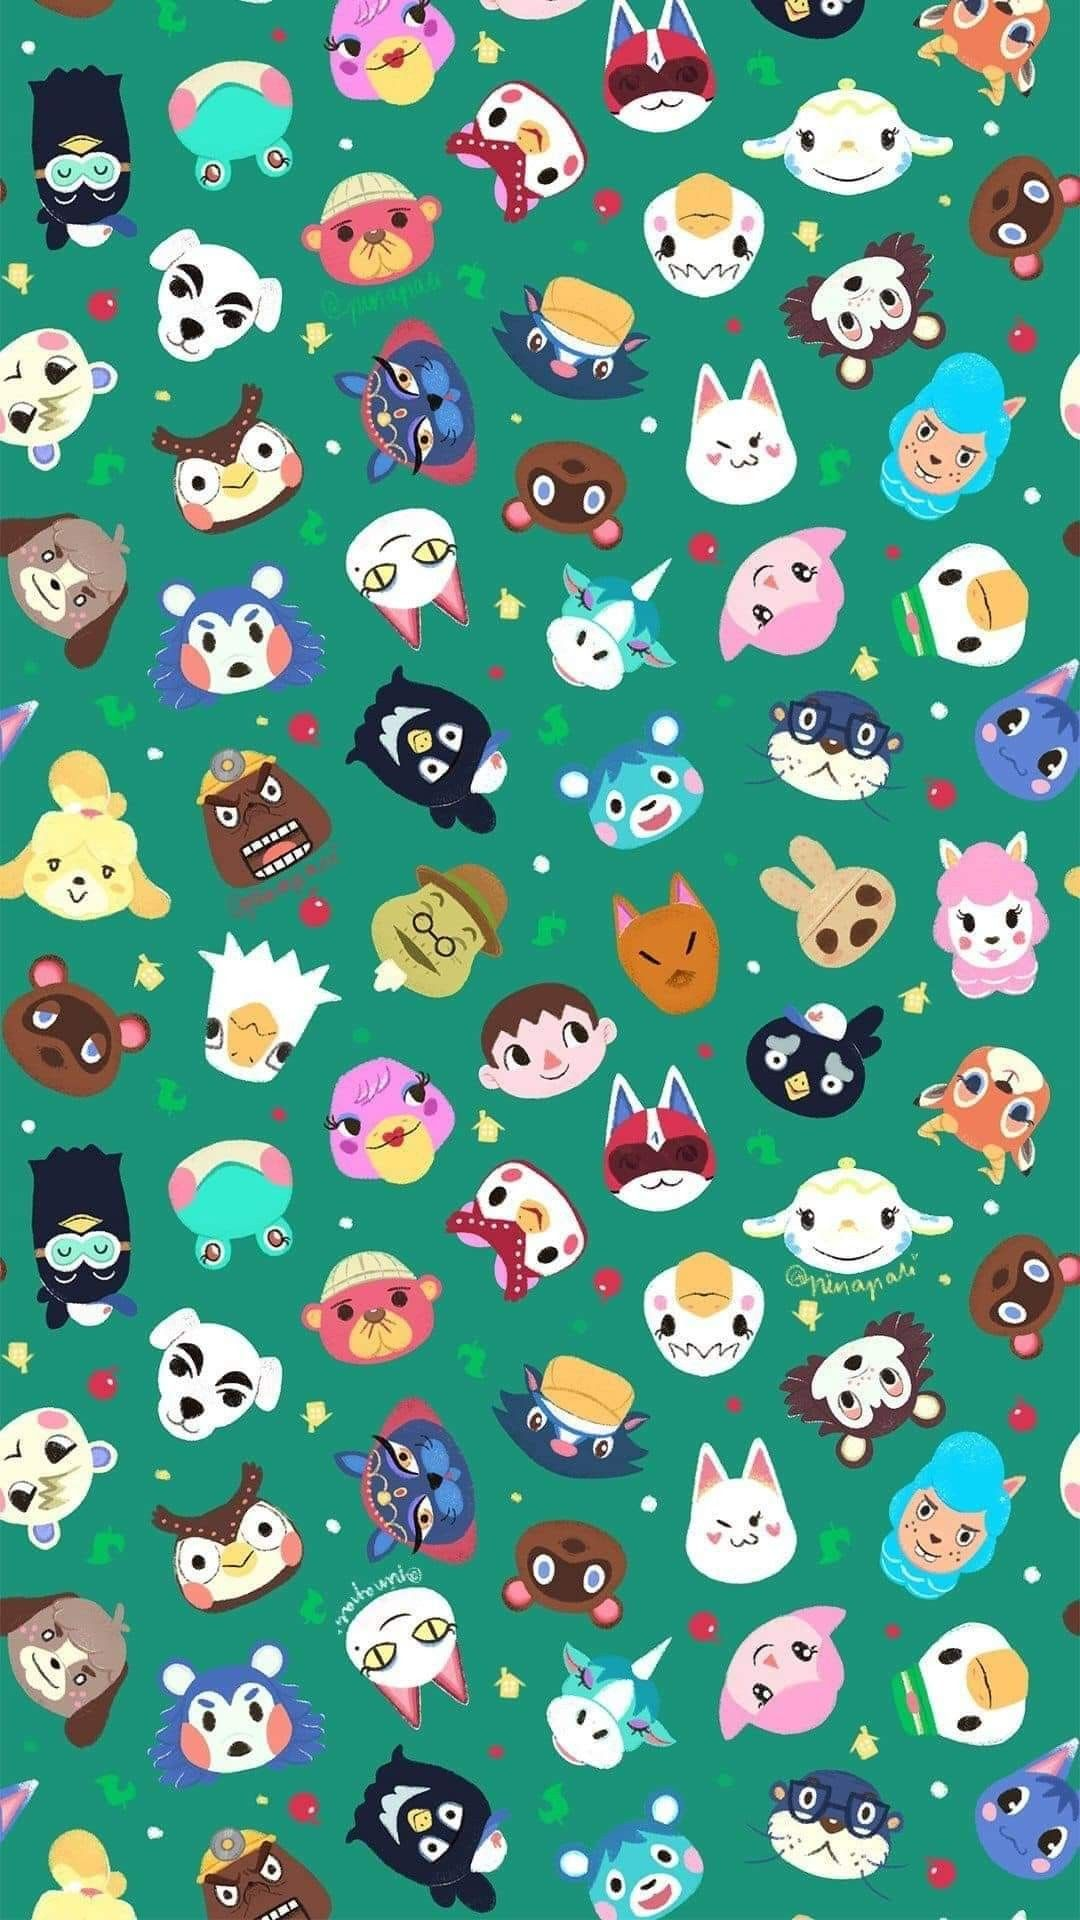 Pin by Ashton Thayer on acnl in 2020 Animal crossing